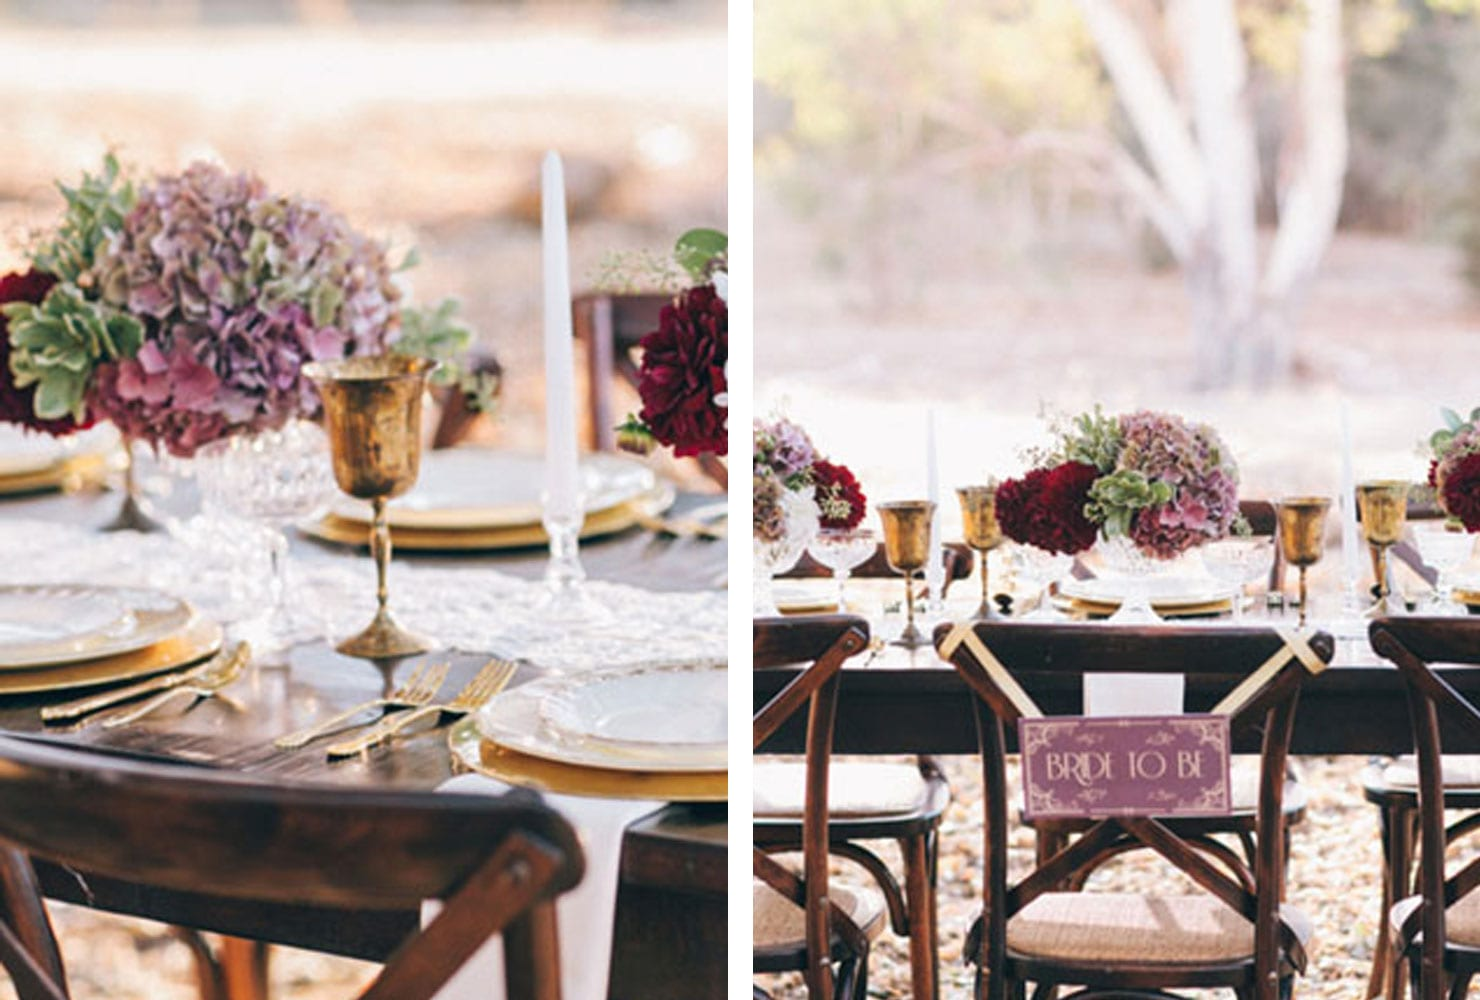 Dark wood table with gold and mauve floral accents